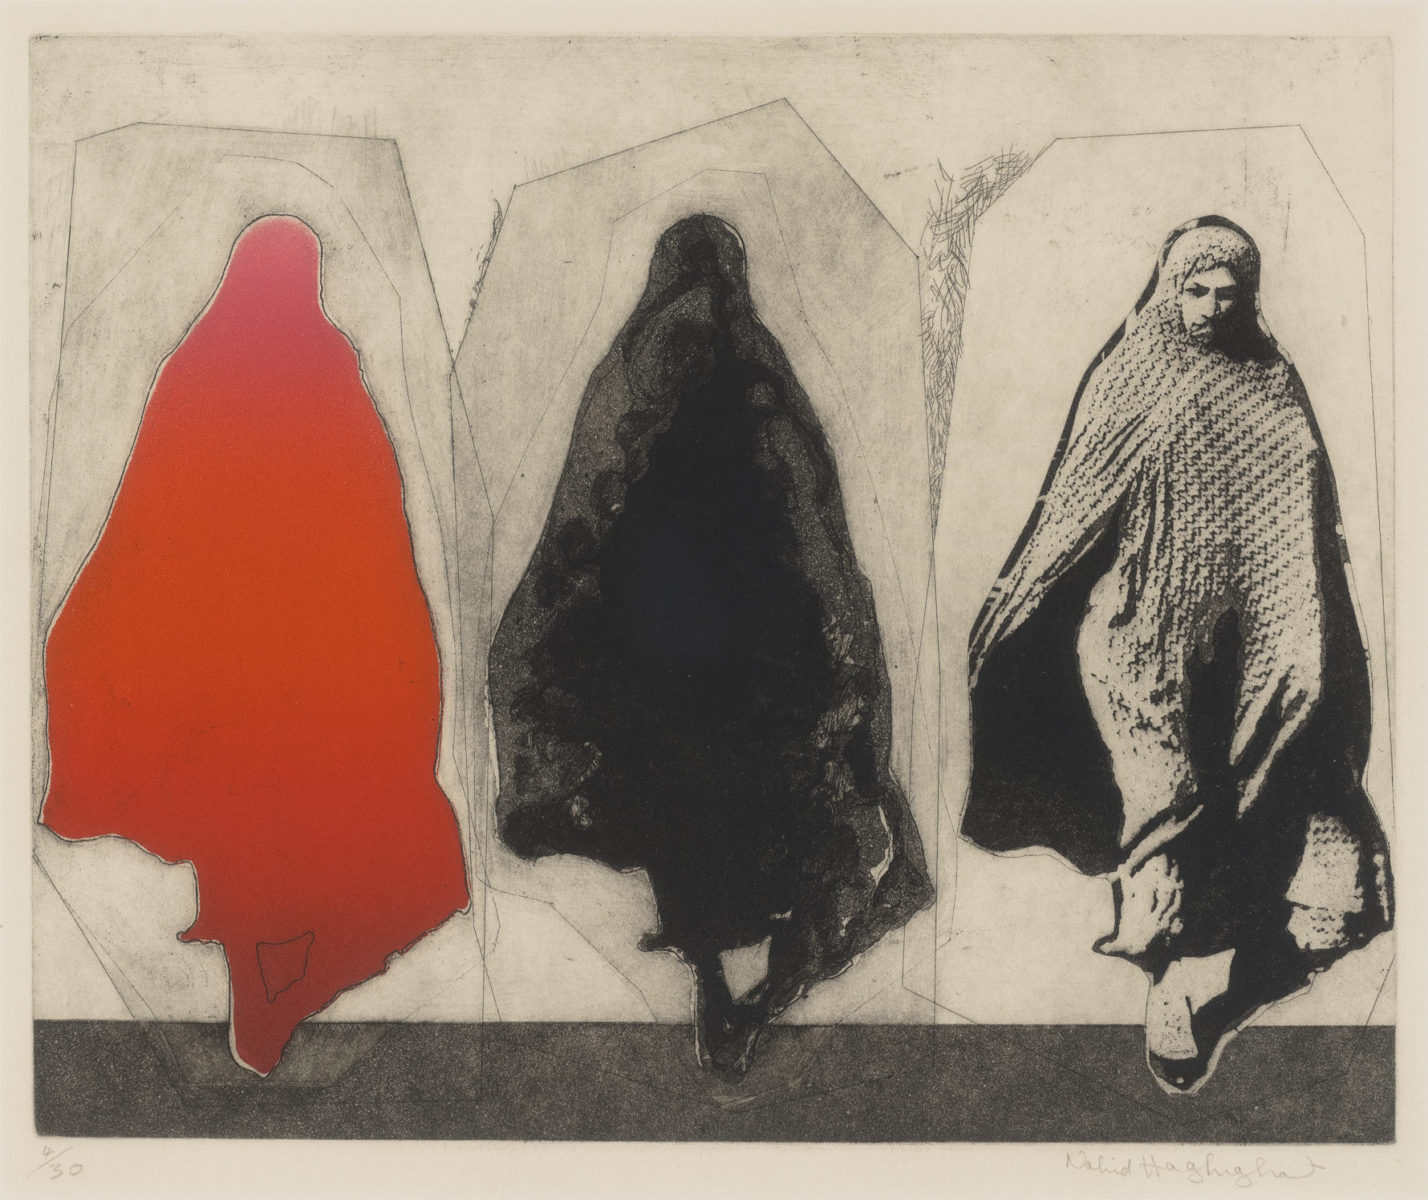 'Woman wearing a chador' by Nahid Haghighat.